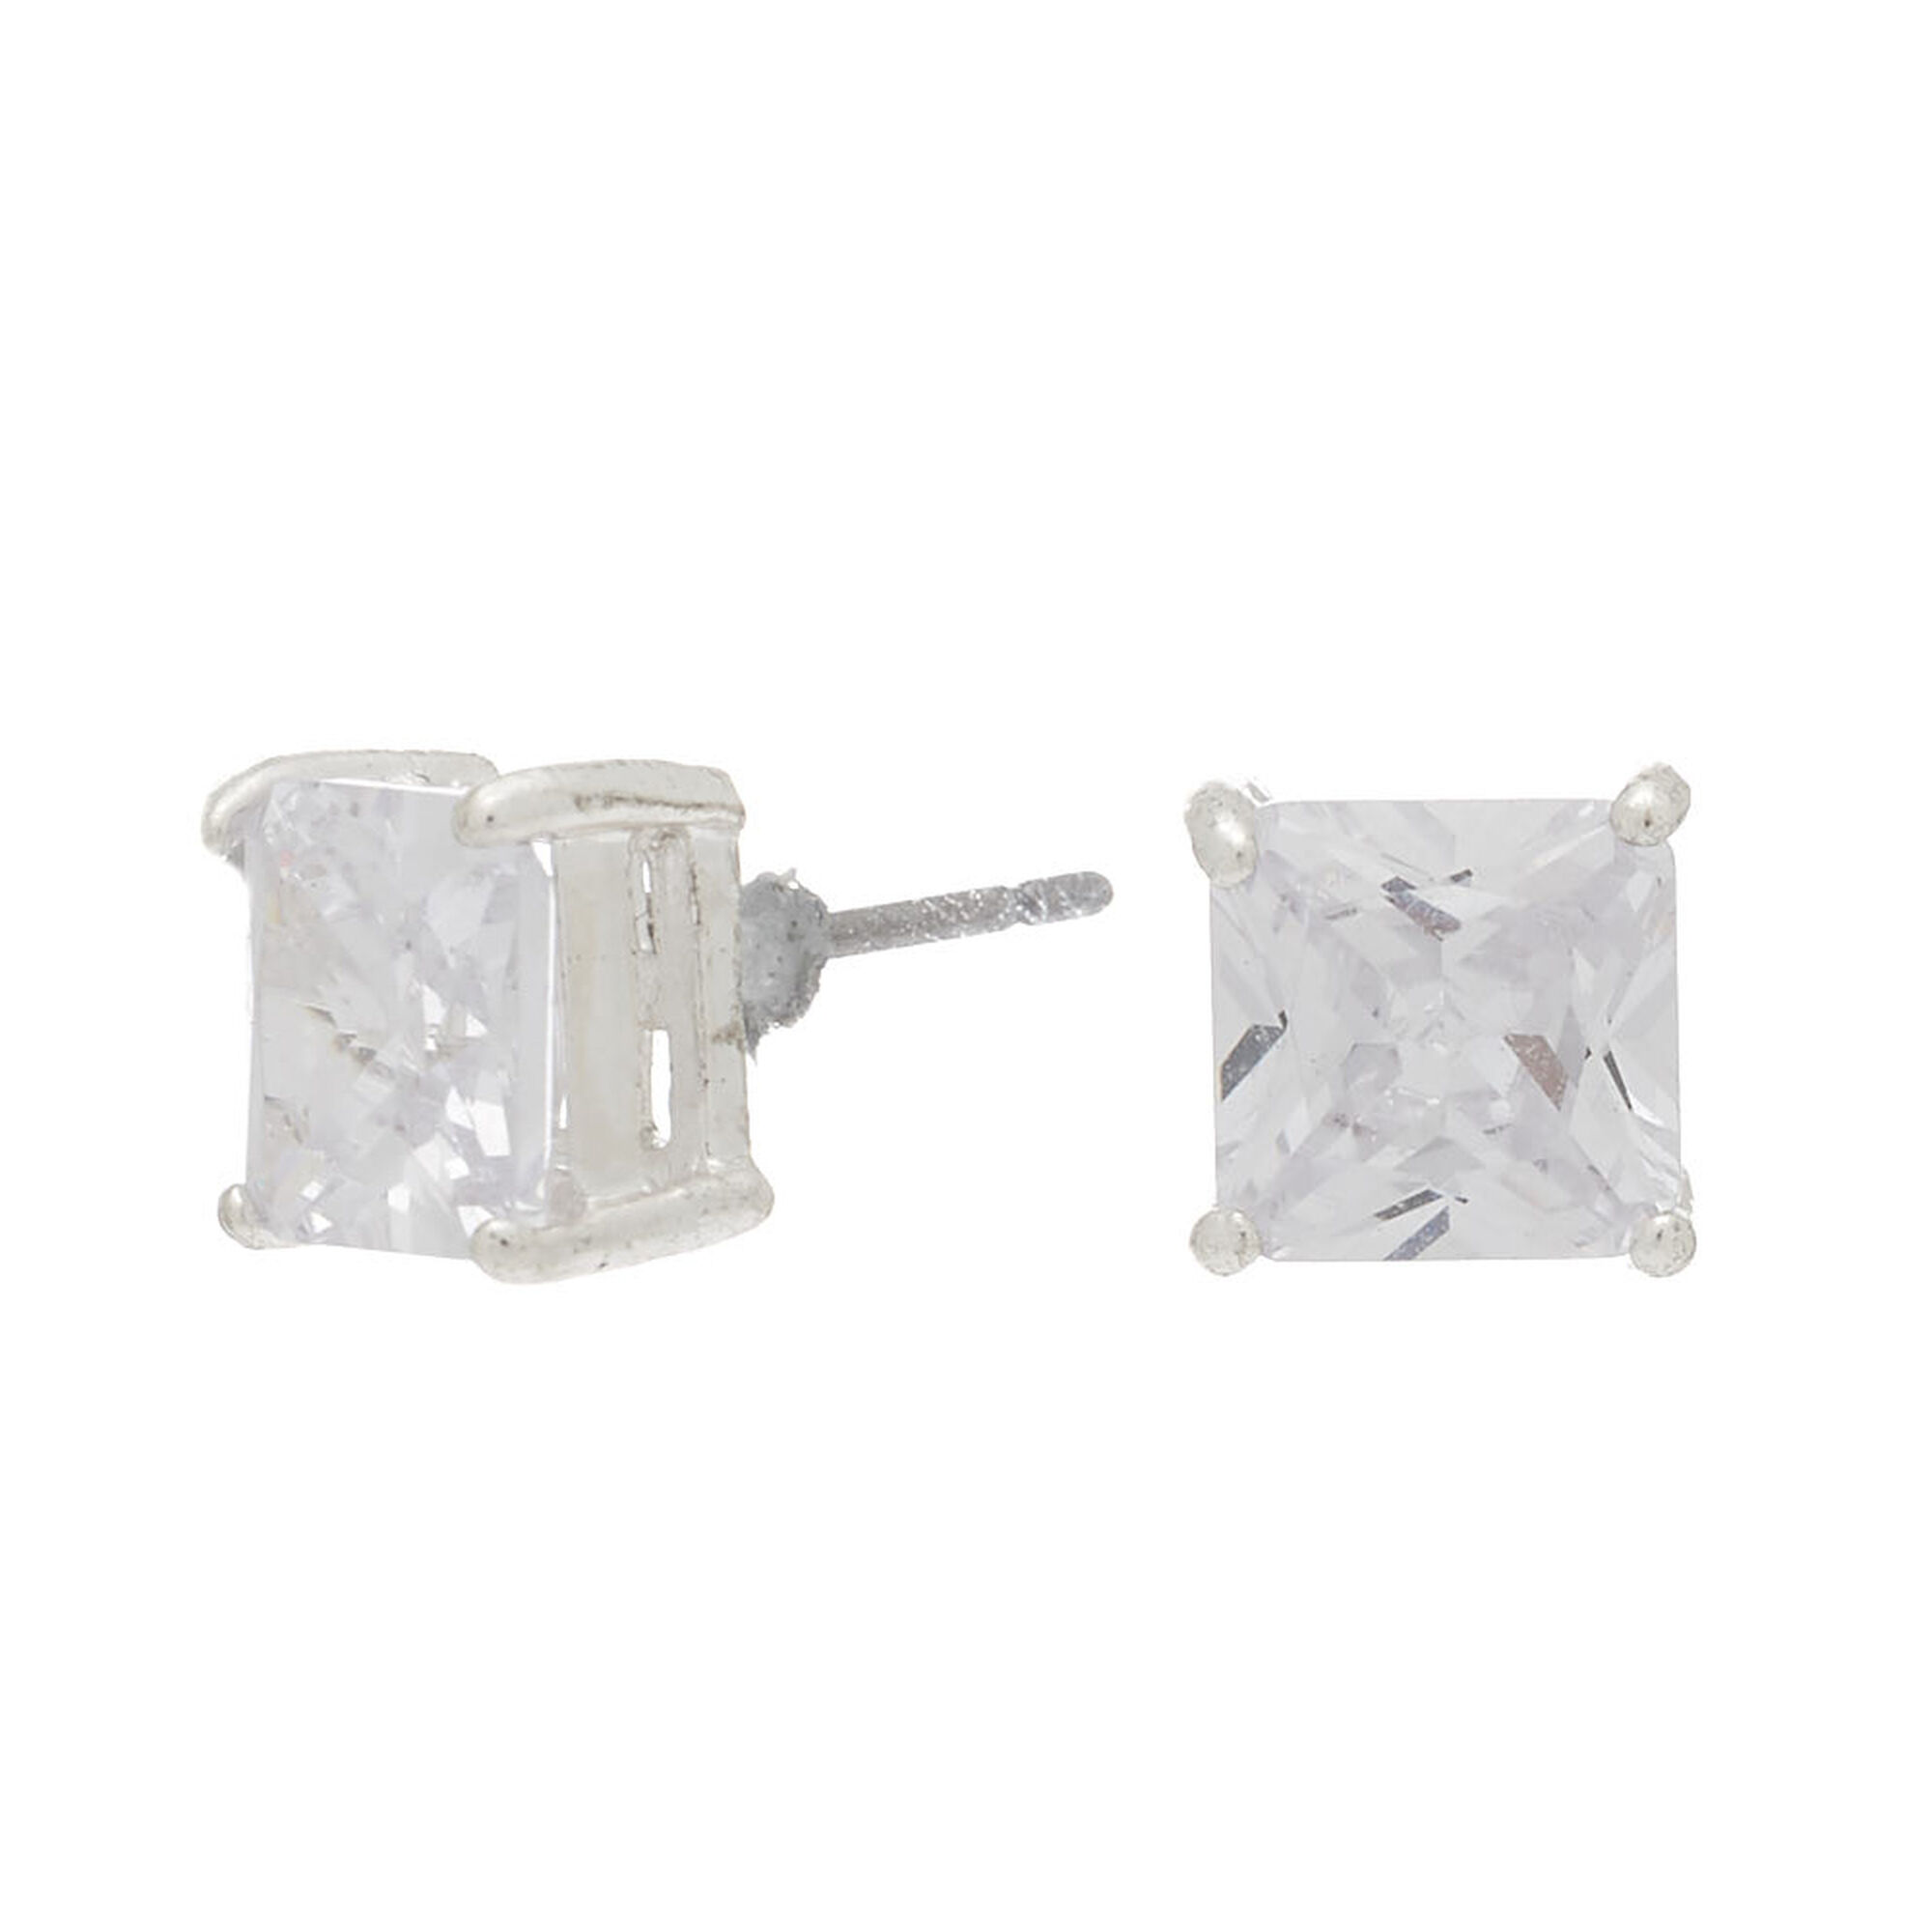 Silver Cubic Zirconia Square Stud Earrings - 7MM